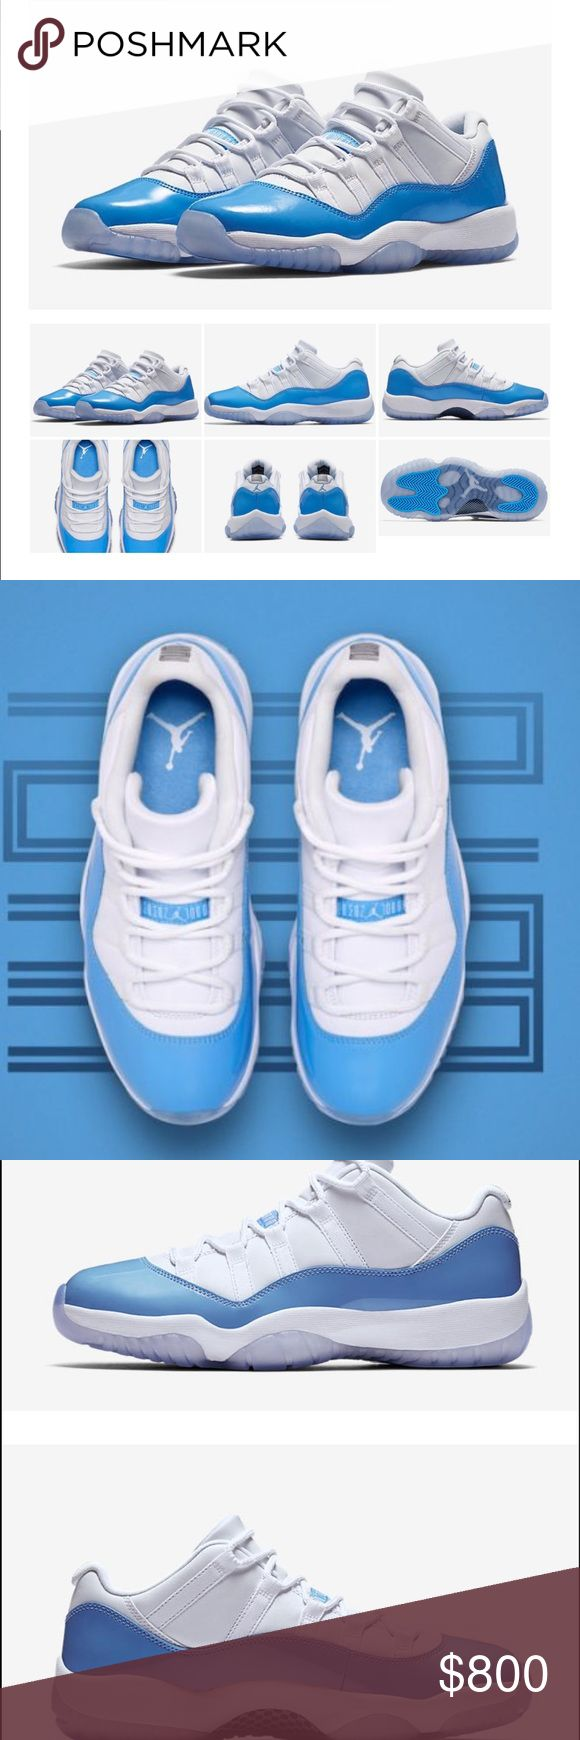 "Air Jordan 11 Low ""UNC"" Air Jordan XI Lows North Carolina. White and University Blue. Dropping tomorrow I have the ticket for a size 13. Going to be brand new in the box obviously. Receipt will be included if you want it. These are going to be hard to get anyway else Jordan Shoes Athletic Shoes"